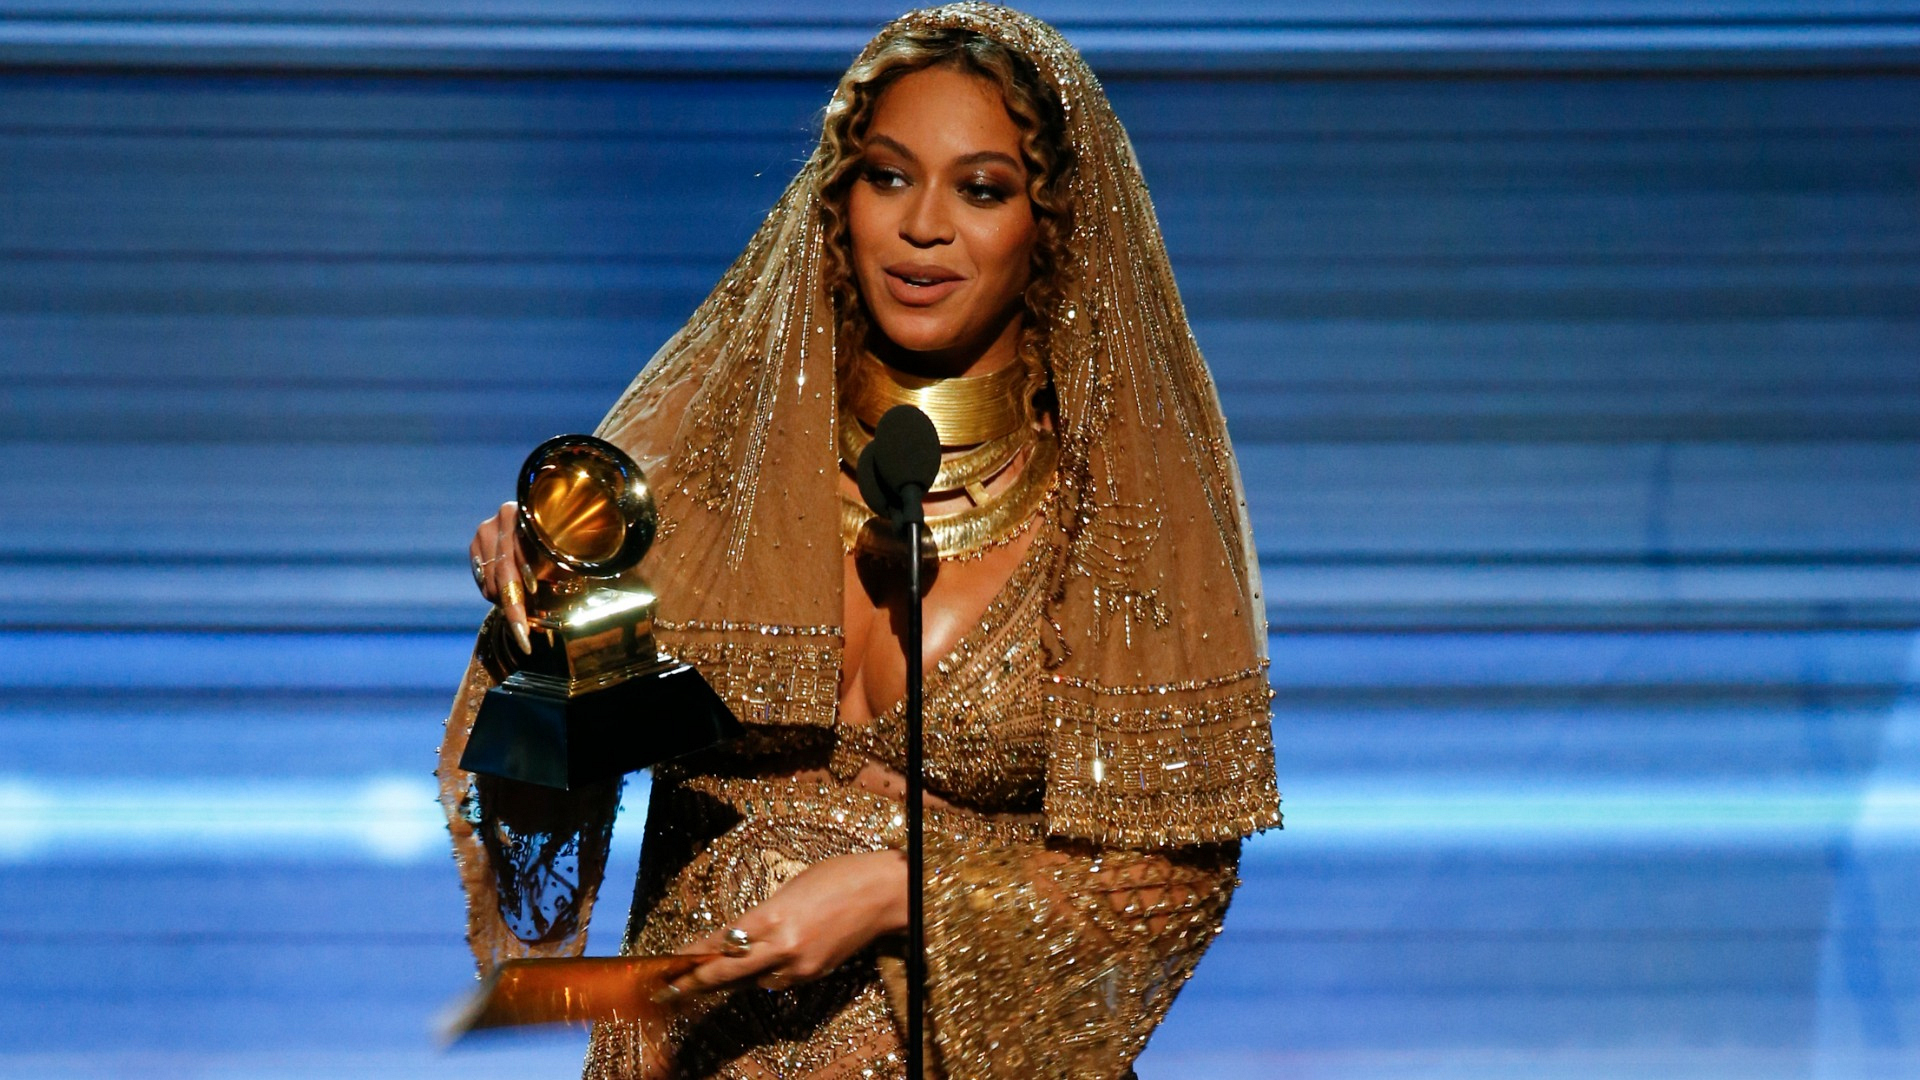 Beyoncé wins Best Urban Contemporary Album at the 2017 GRAMMY Awards